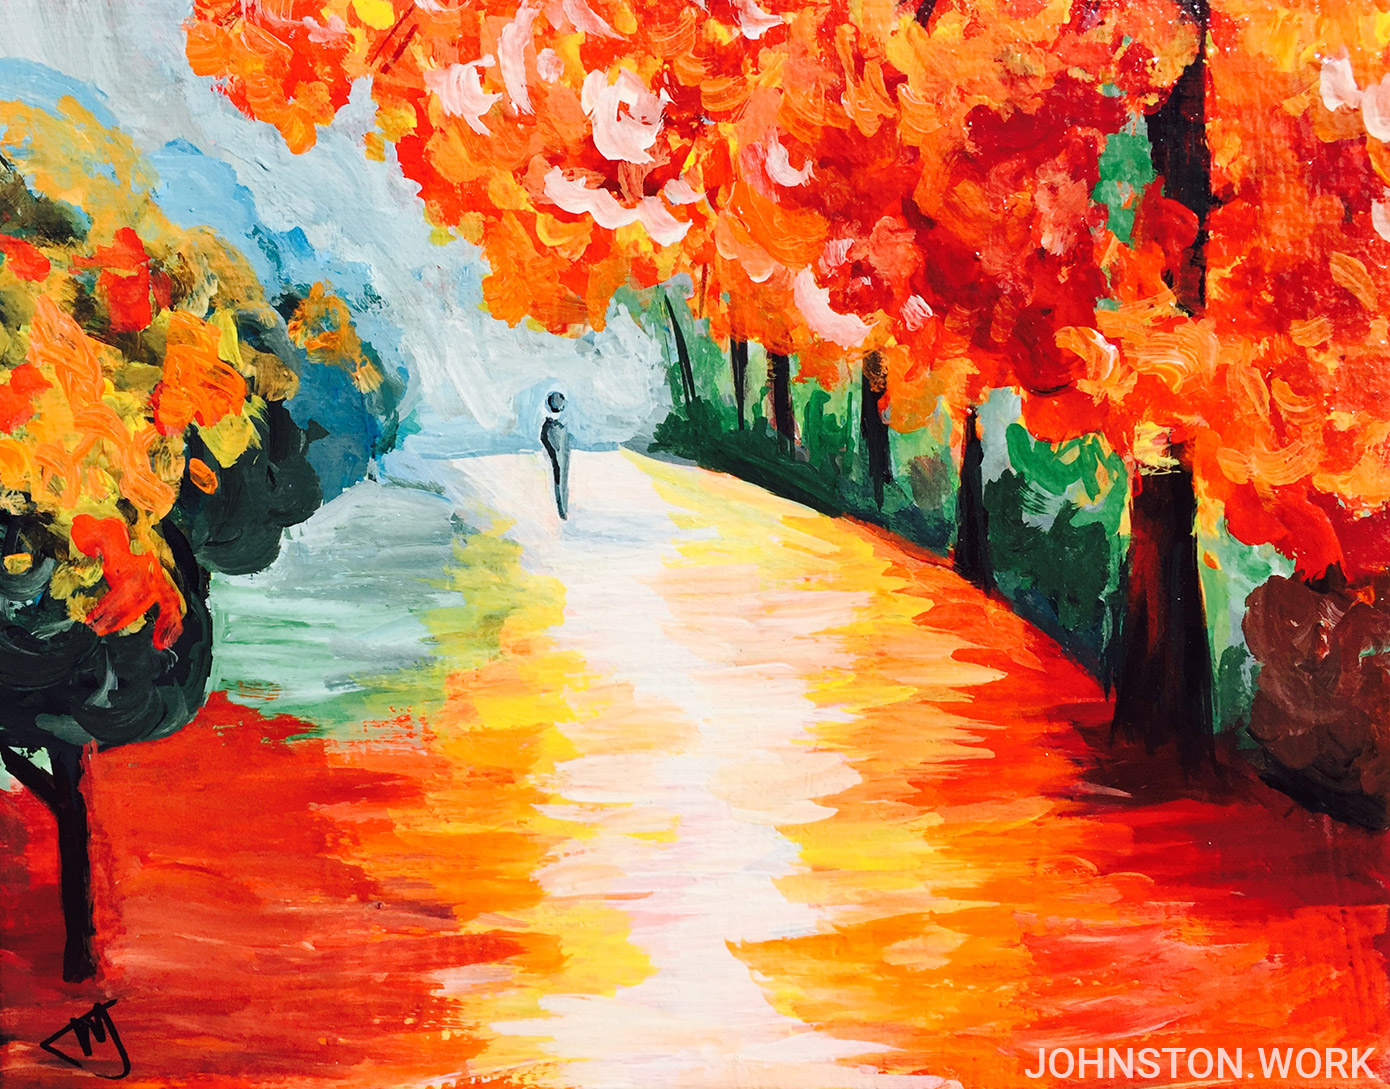 Painting Autumn Acrylic Johnston.work